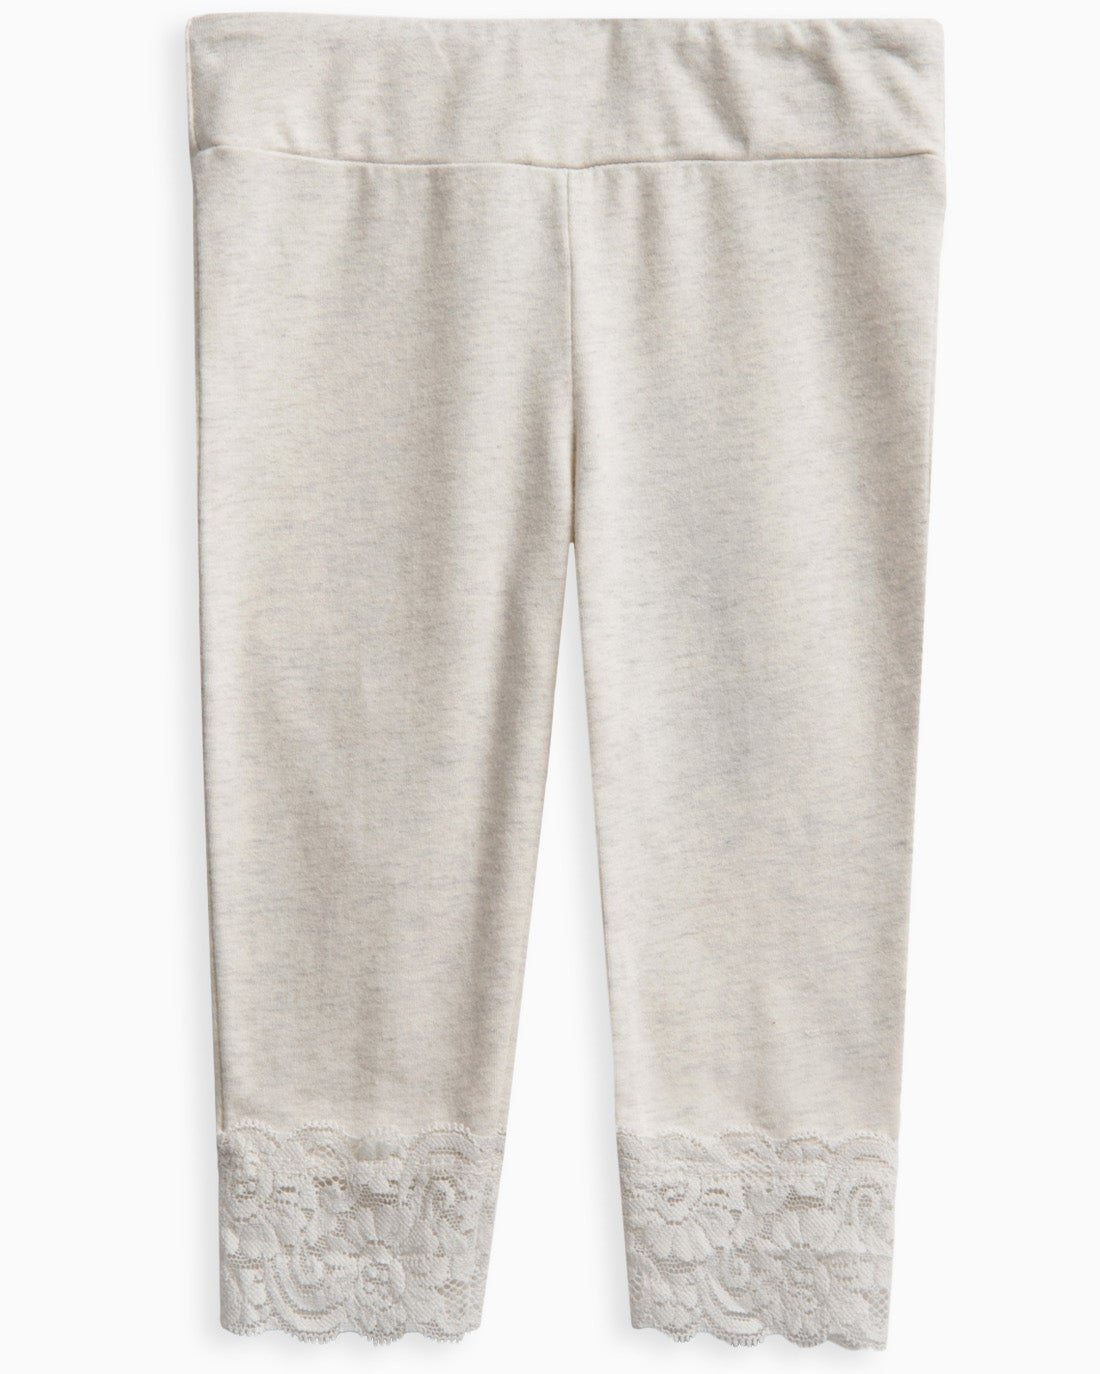 The Baby Girl Legging with Lace Bottom is perfectly updated withsartoriallace details that add an easy elegant finishto her look. Lace trim Stretchy elastic waistband